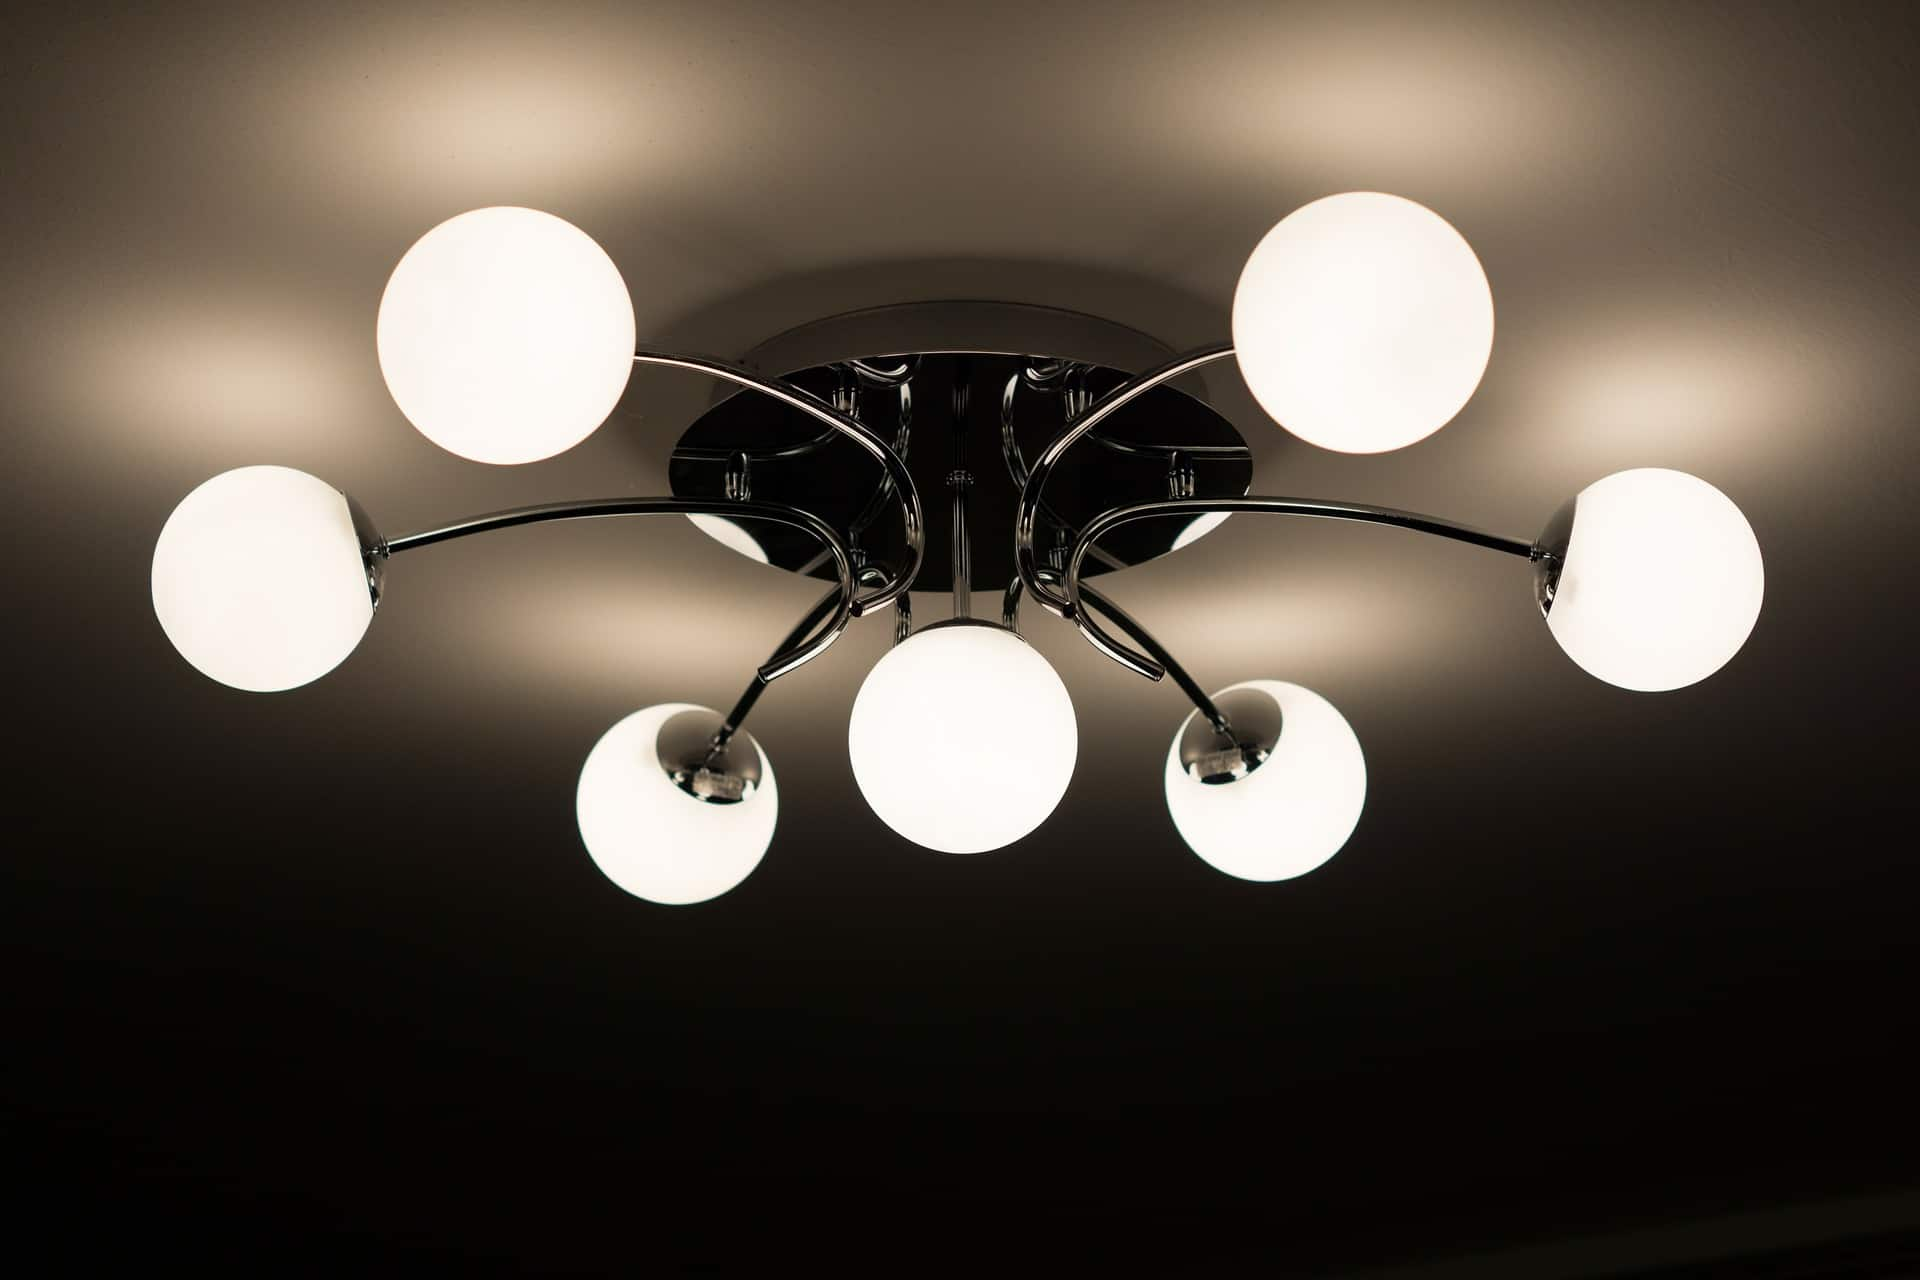 Stunning Ceiling Ideas To Spice Up Your Life